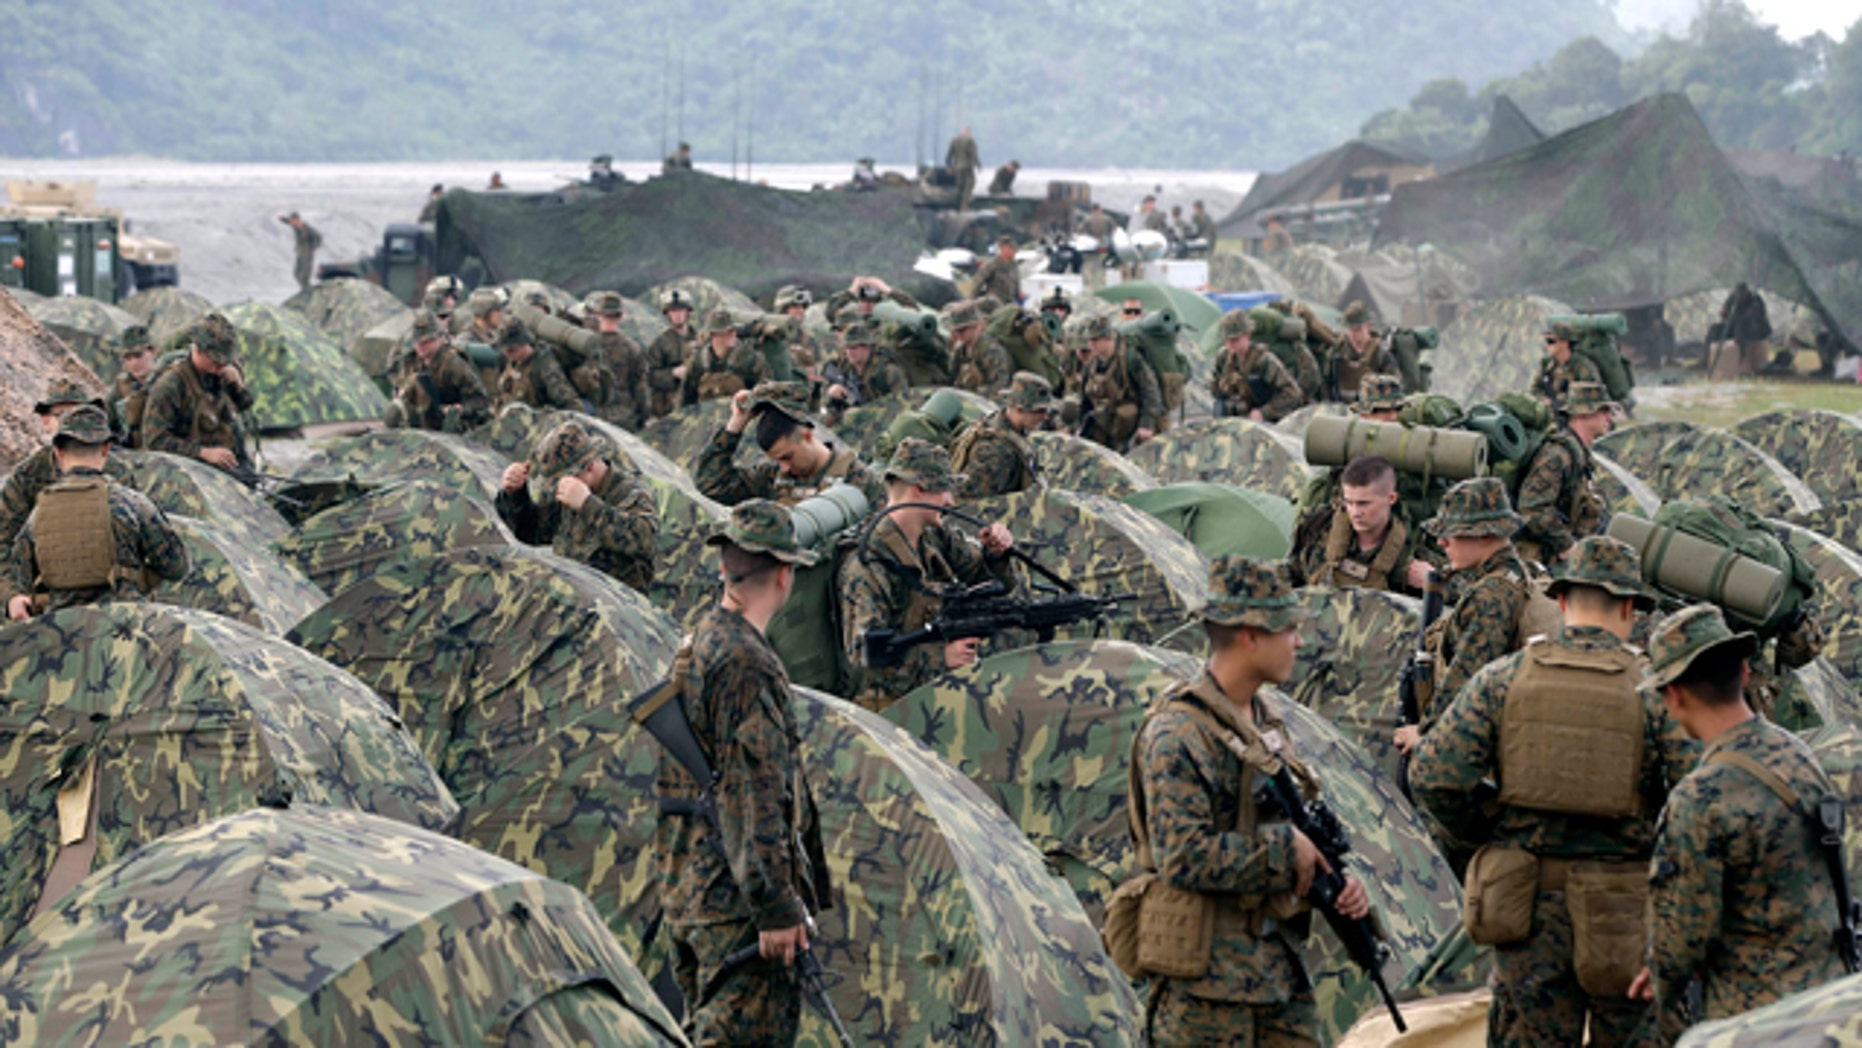 Oct. 9, 2012: In this file photo, U.S. Marines fix their tents as they arrive at Crow Valley, Tarlac province in northern Philippines, to take part in the joint U.S.-Philippines amphibious landing exercise, dubbed PHIBLEX 2013.